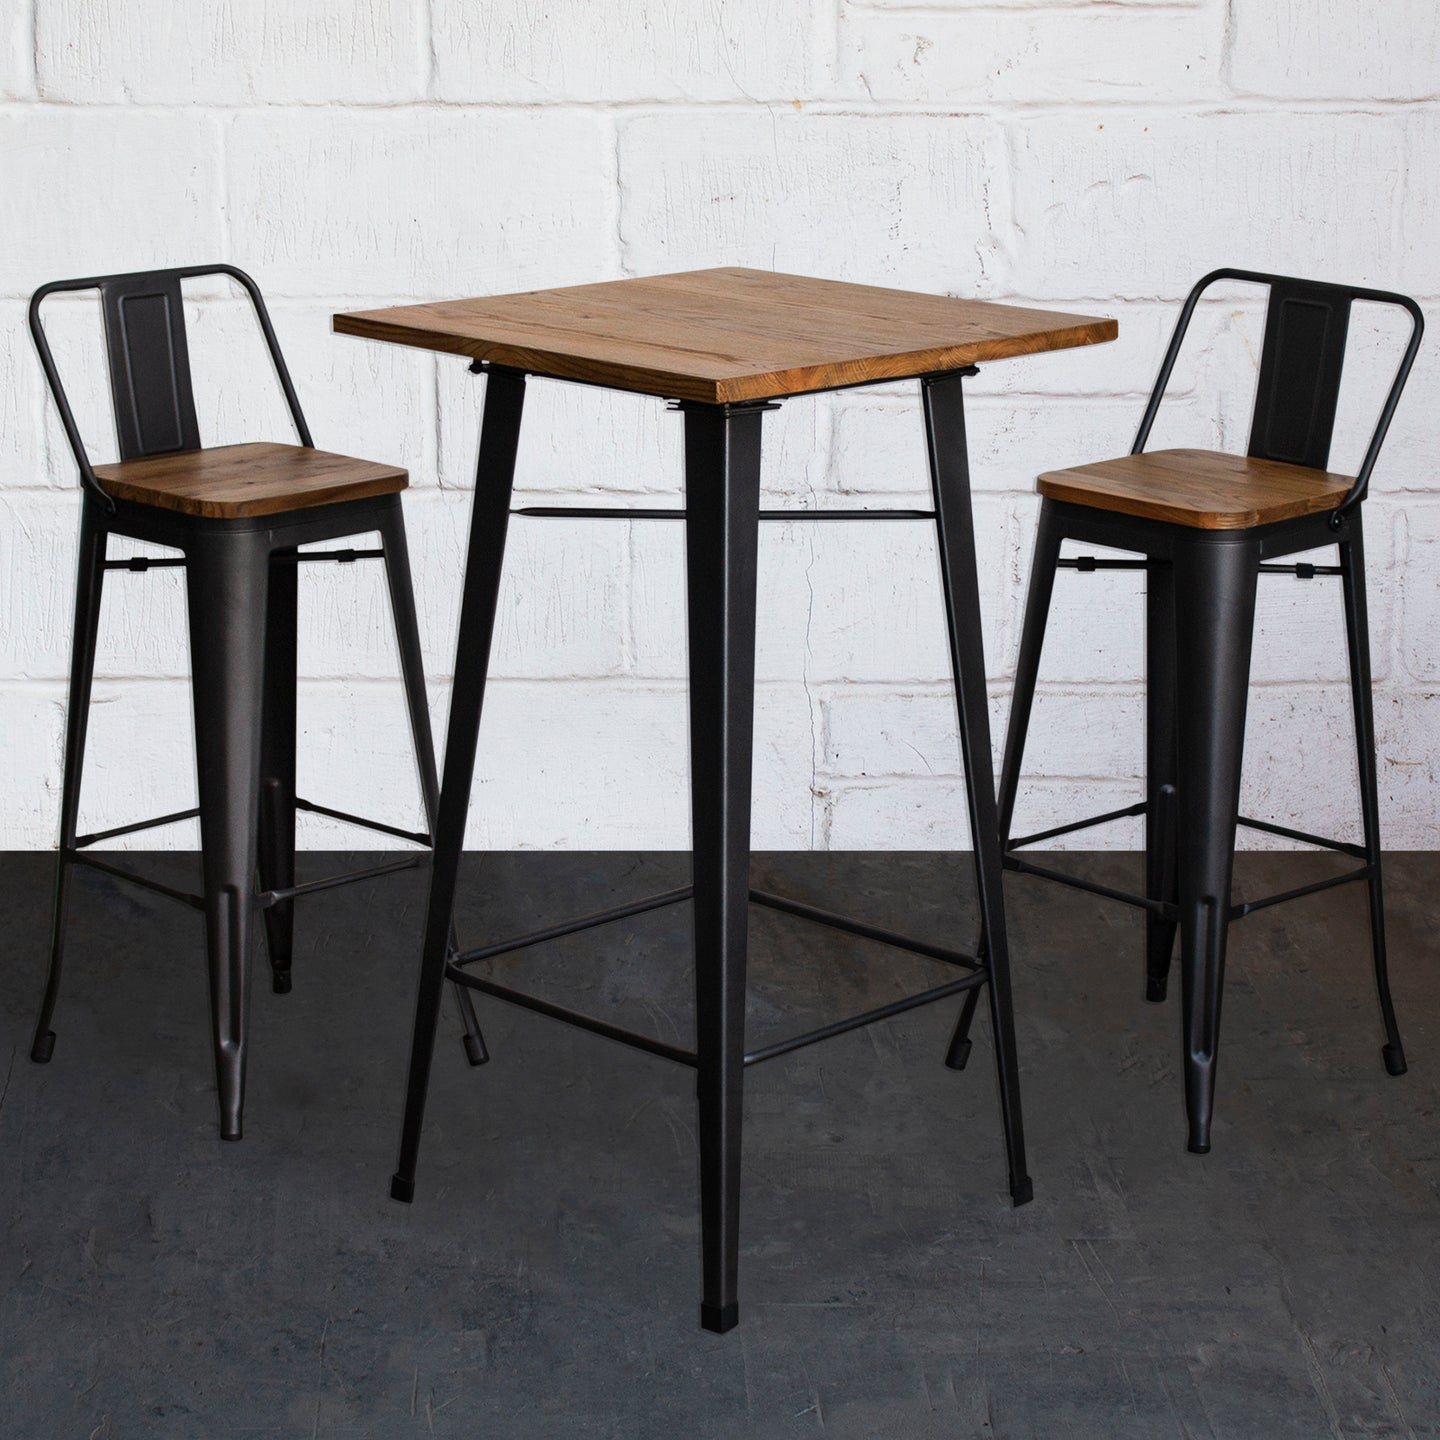 3PC Lodi Table & Tuscany Bar Stool Set - Onyx Matt Black